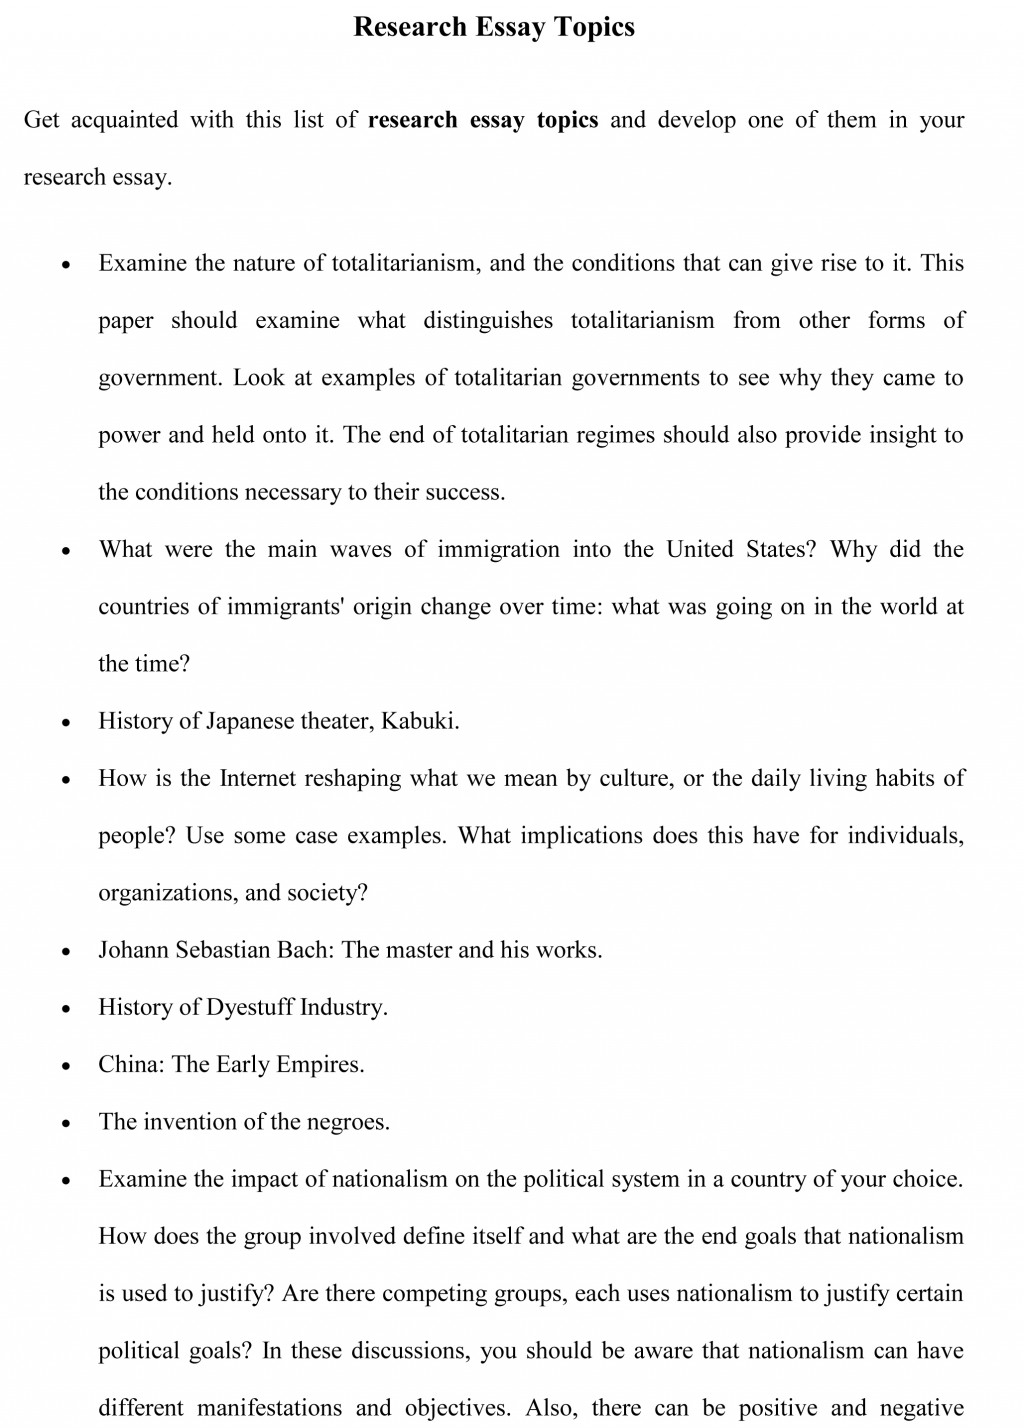 003 Topics To Write Research Paper On Essay Fearsome A Fun History Large